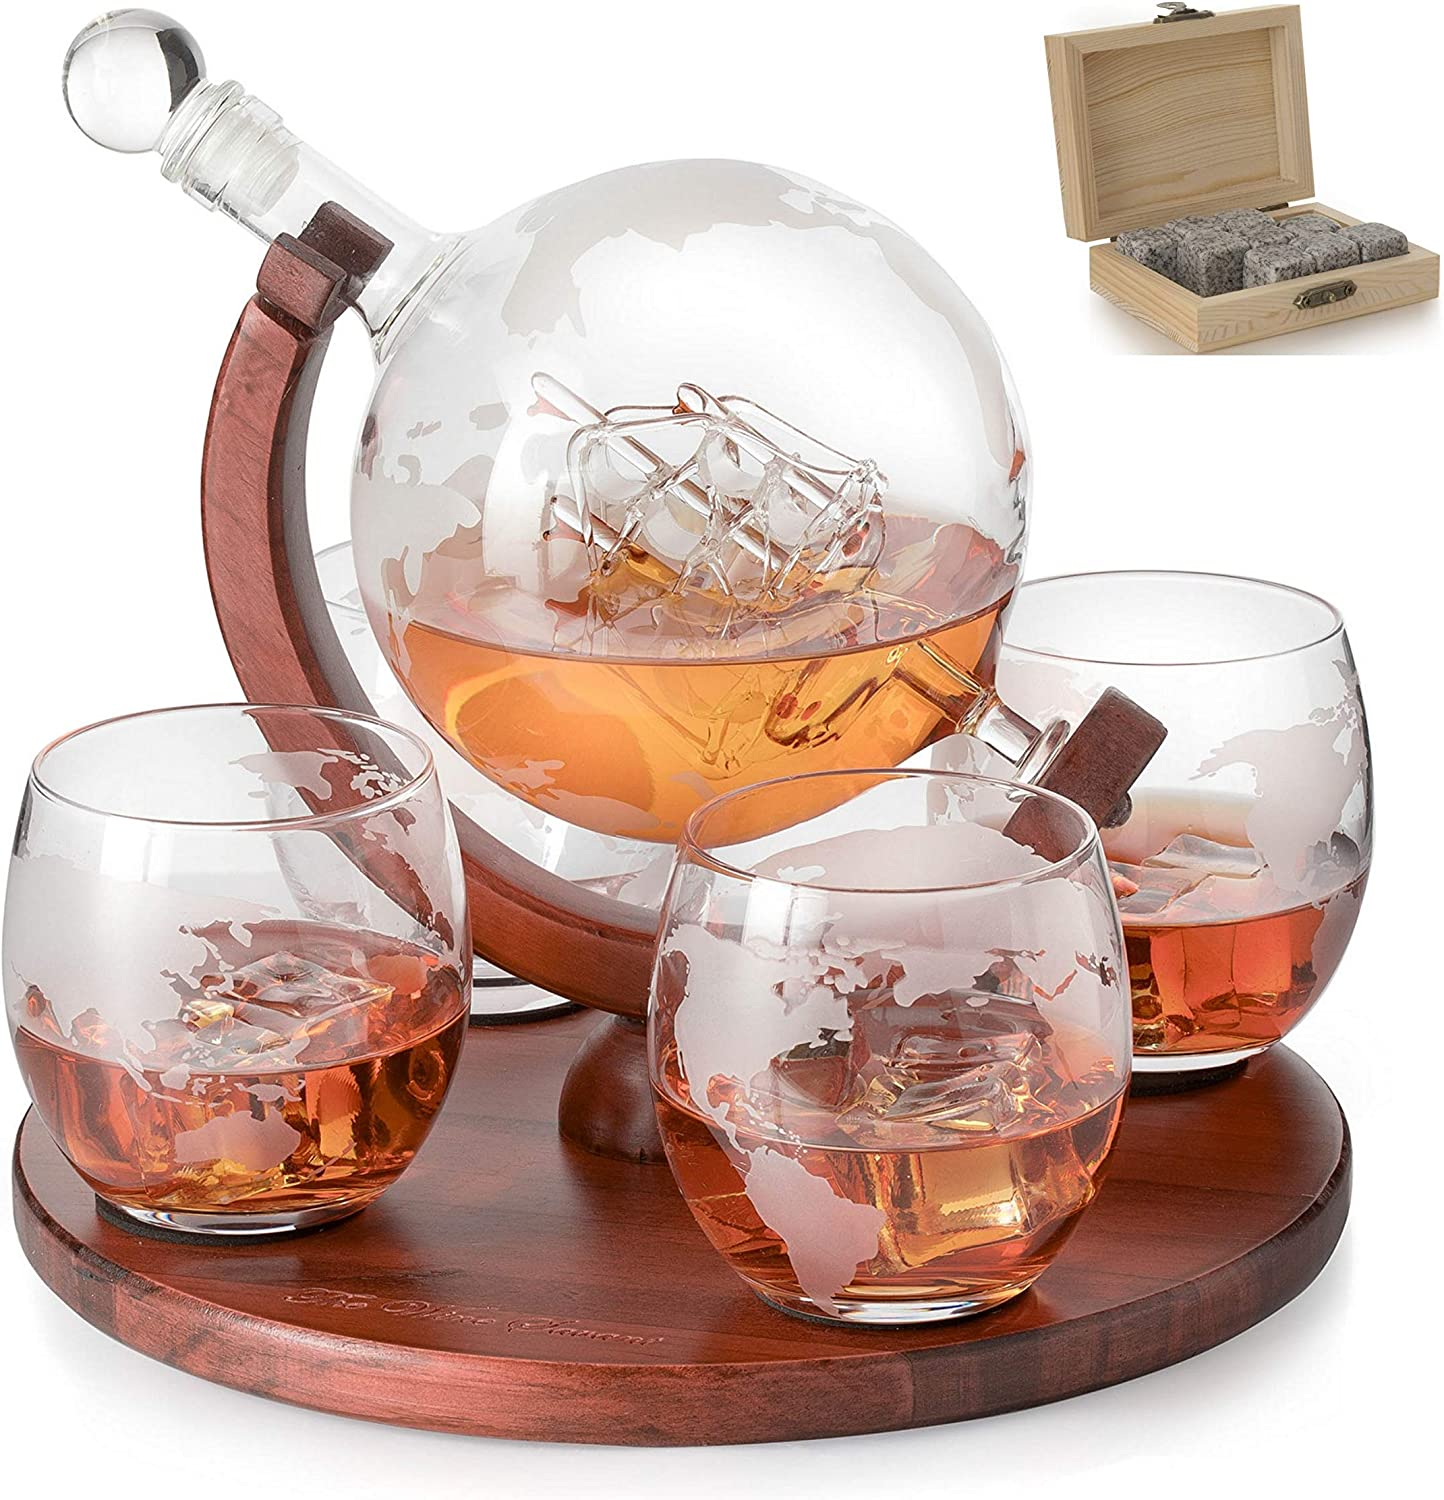 Etched World Decanter Whiskey Globe The Wine Savant Whiskey Gift Set Globe Decanter With Antique Ship Whiskey Stones And 4 World Map Glasses Great Gift Alcohol Related Gift